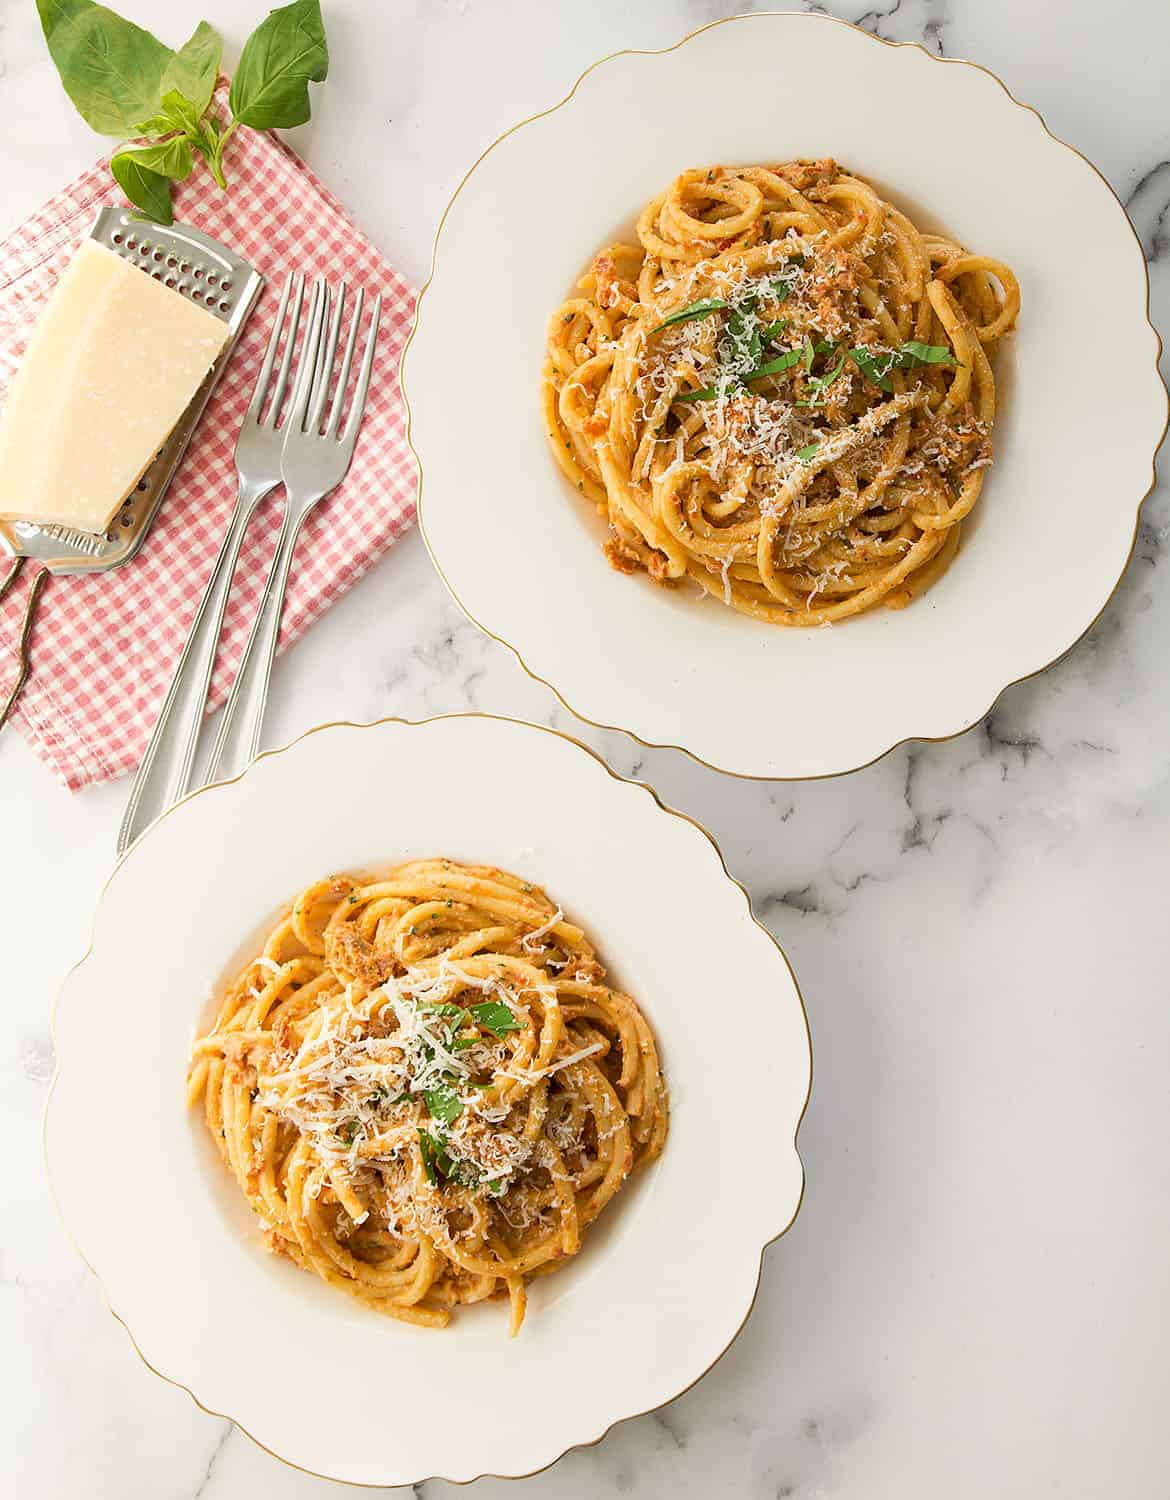 Sun dried tomato pesto pasta served into white plates with freshly grated parmesan.